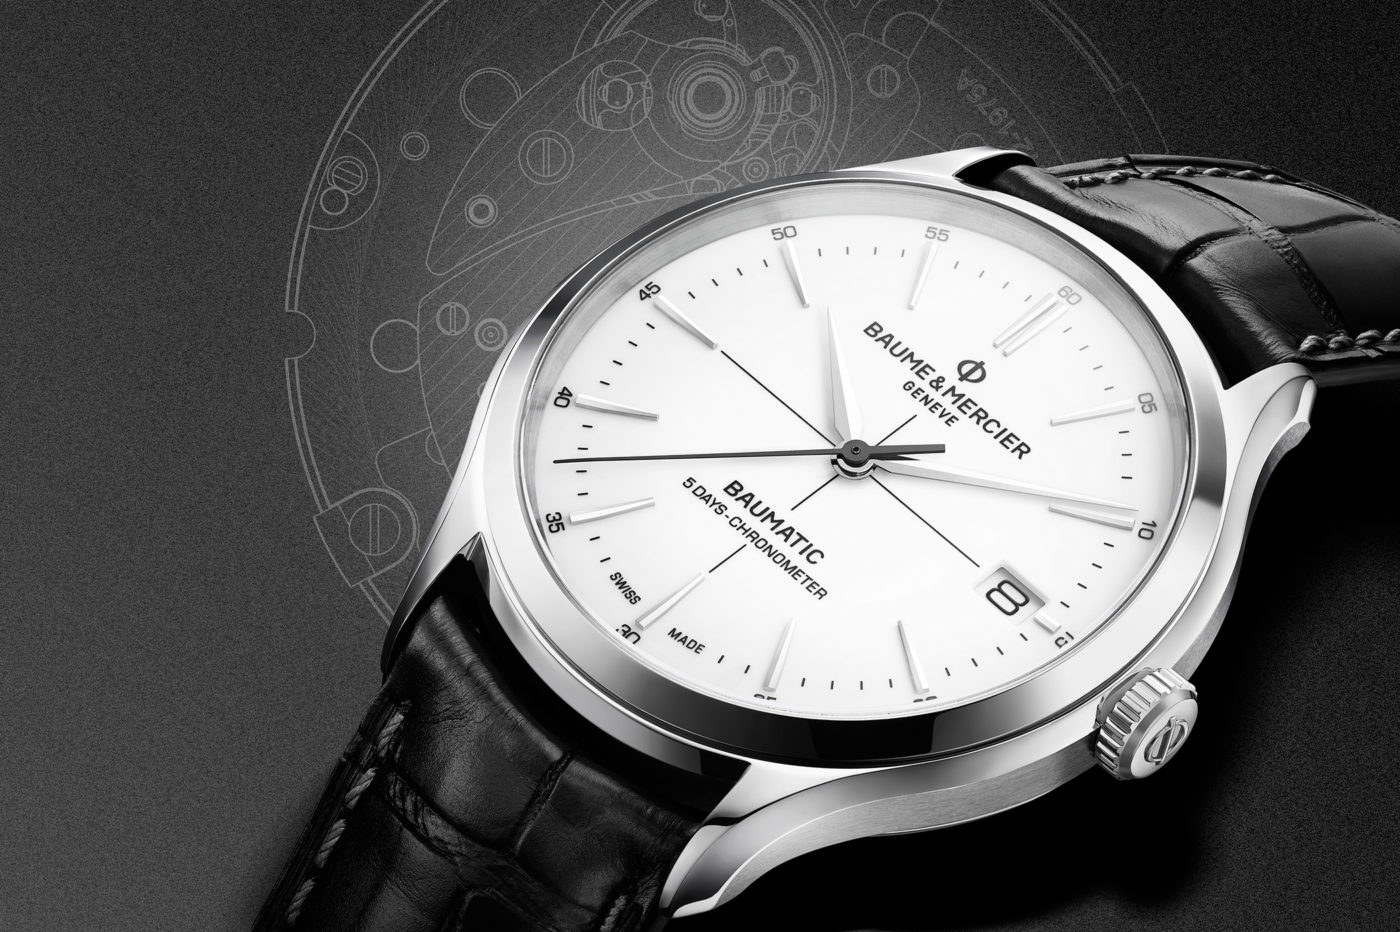 Baume & Mercier Clifton Baumatic – zegarek z mechanizmem in-house i certyfikatem COSC – SIHH 2018 [cena]